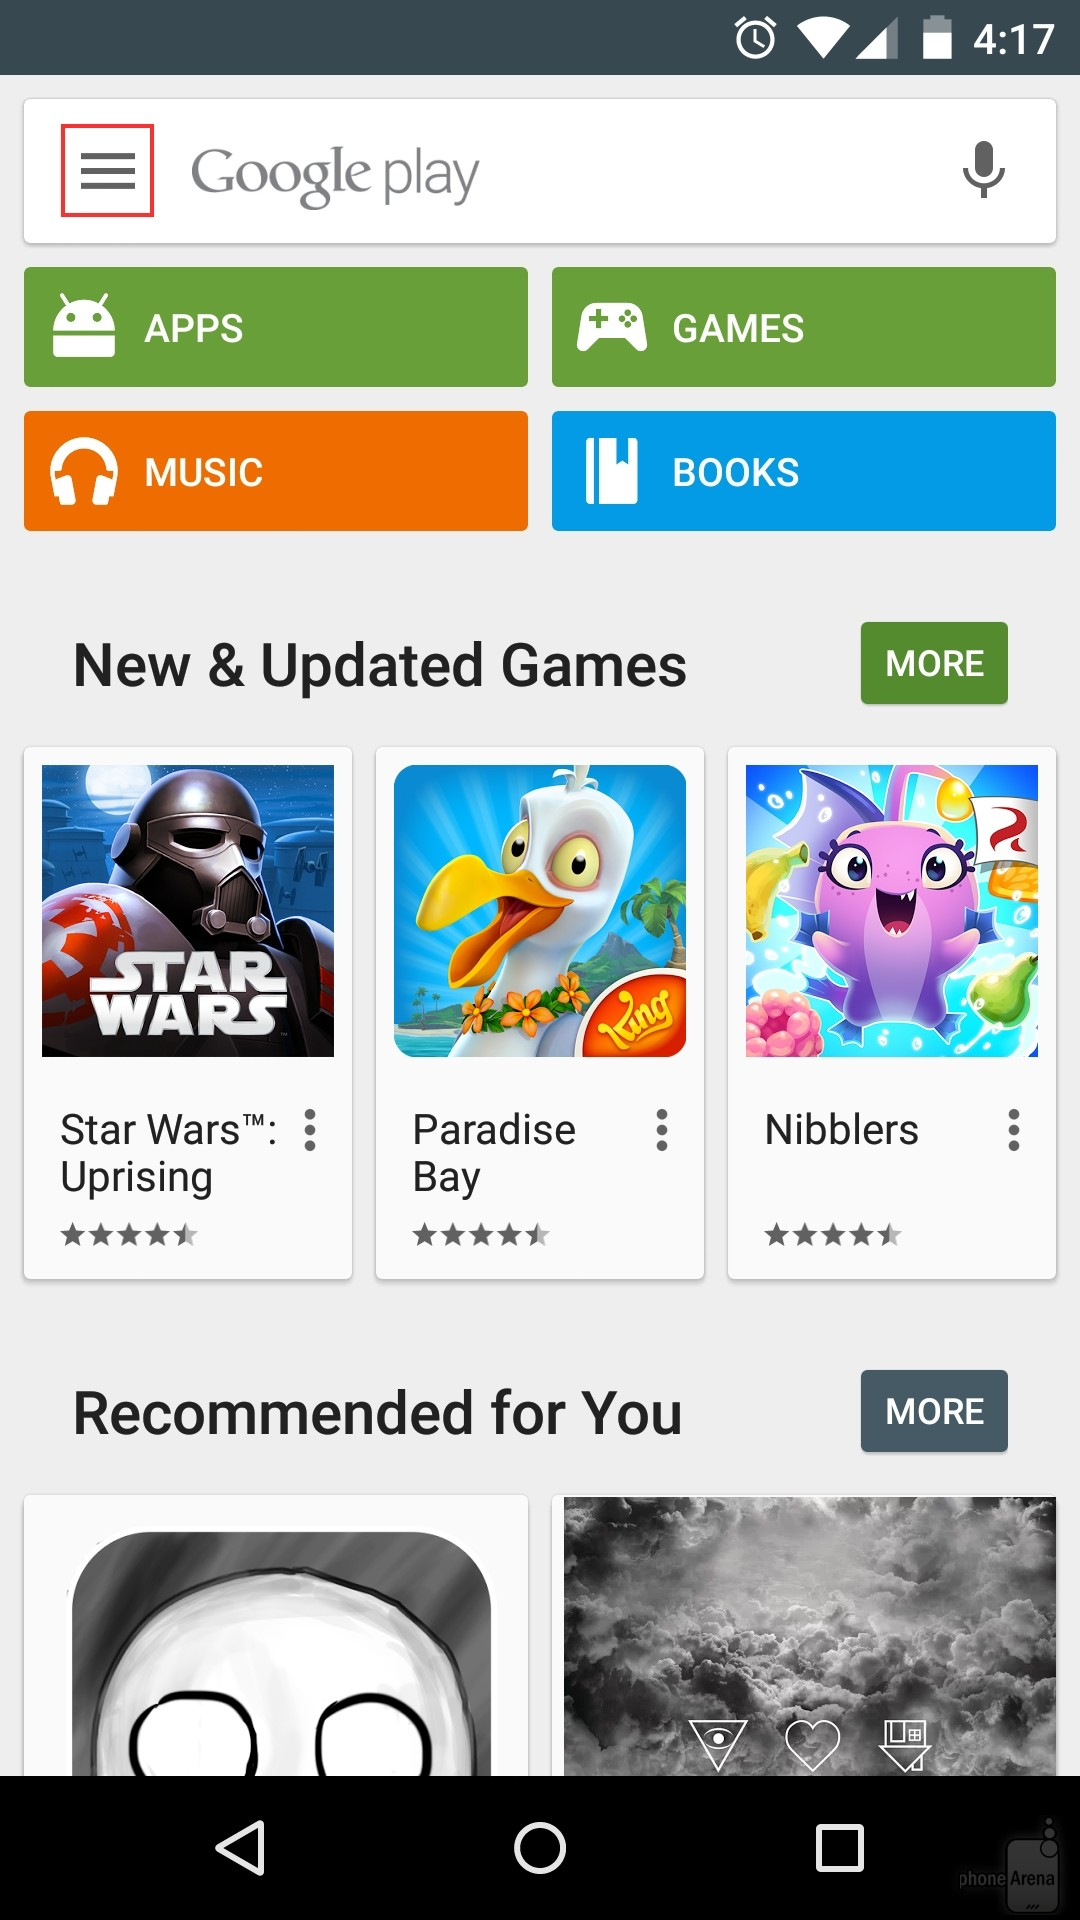 On-the-Play-Store-home-screen-the-menu-button-is-always-located-in-the-upper-left-corner.